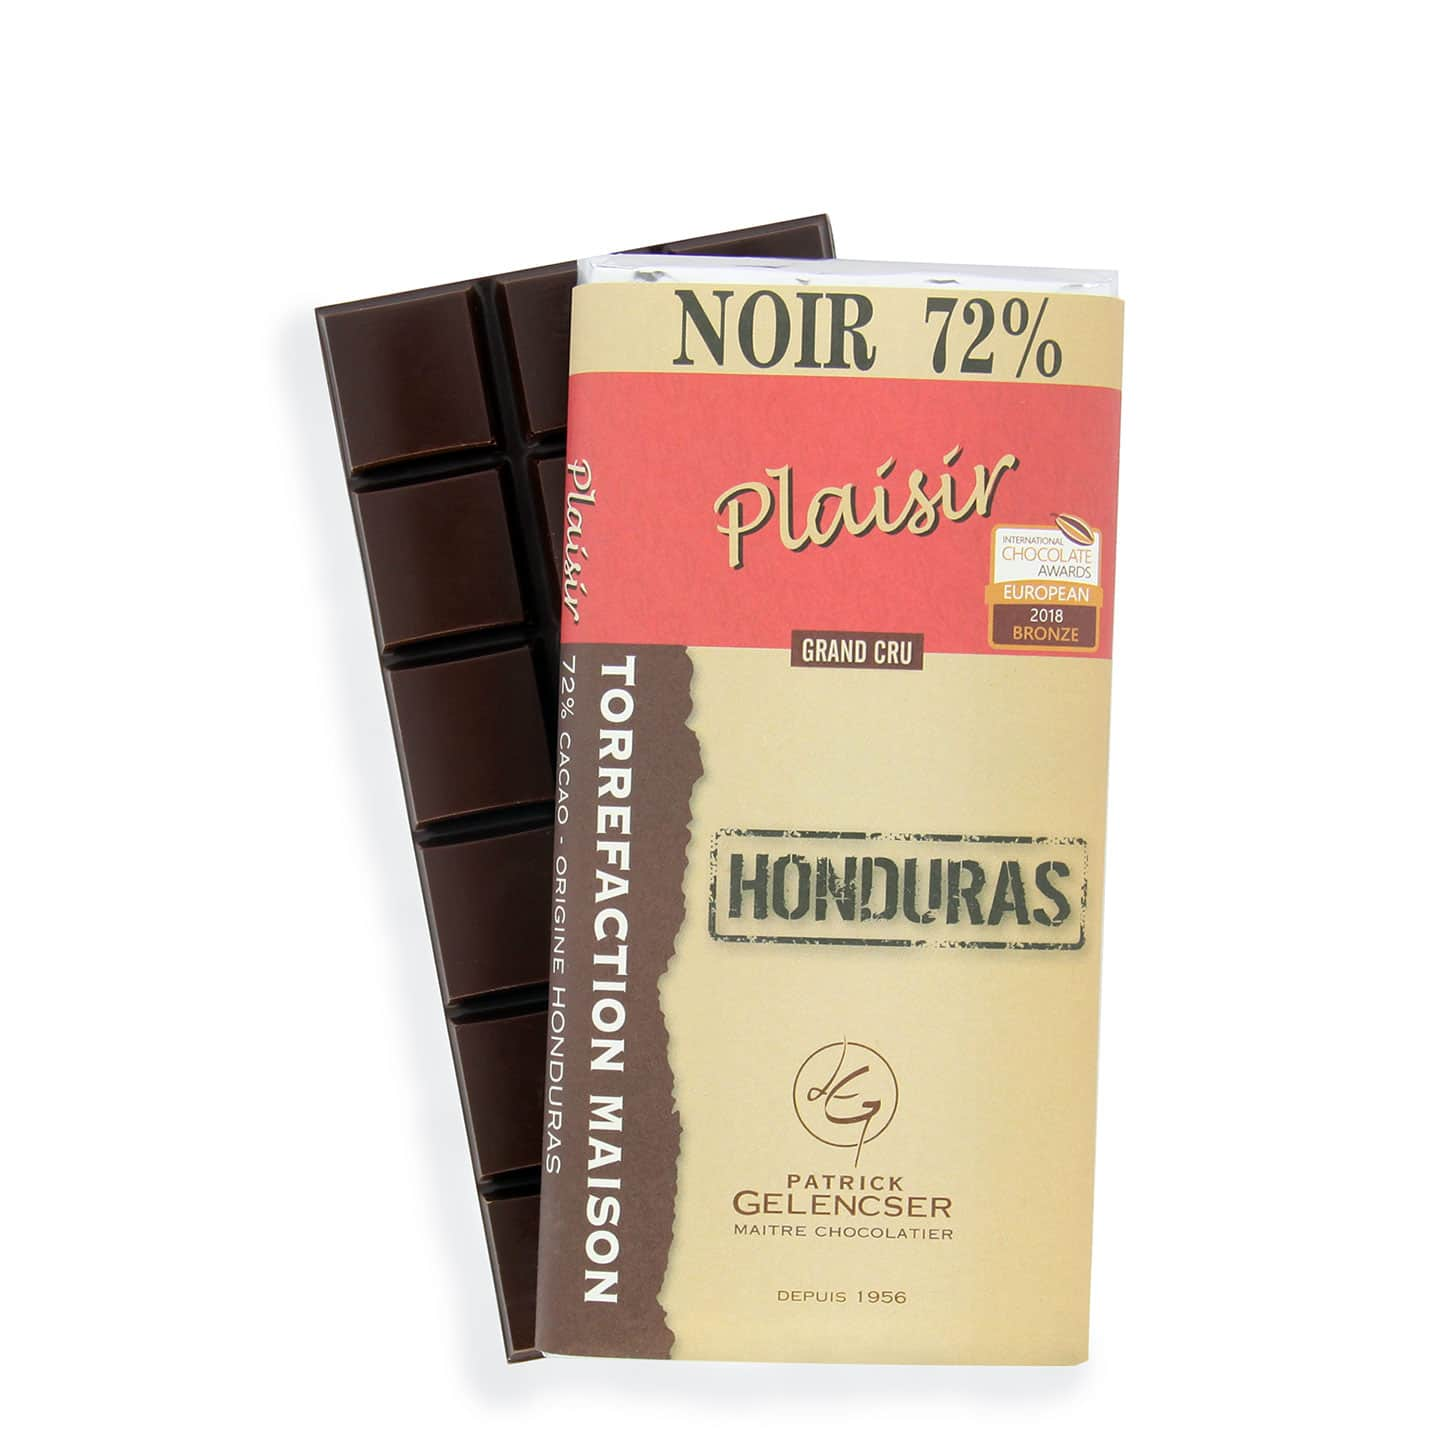 Tablette Chocolat Noir 72% Grand Cru origine Honduras 100g Plaisir - Bean to Bar